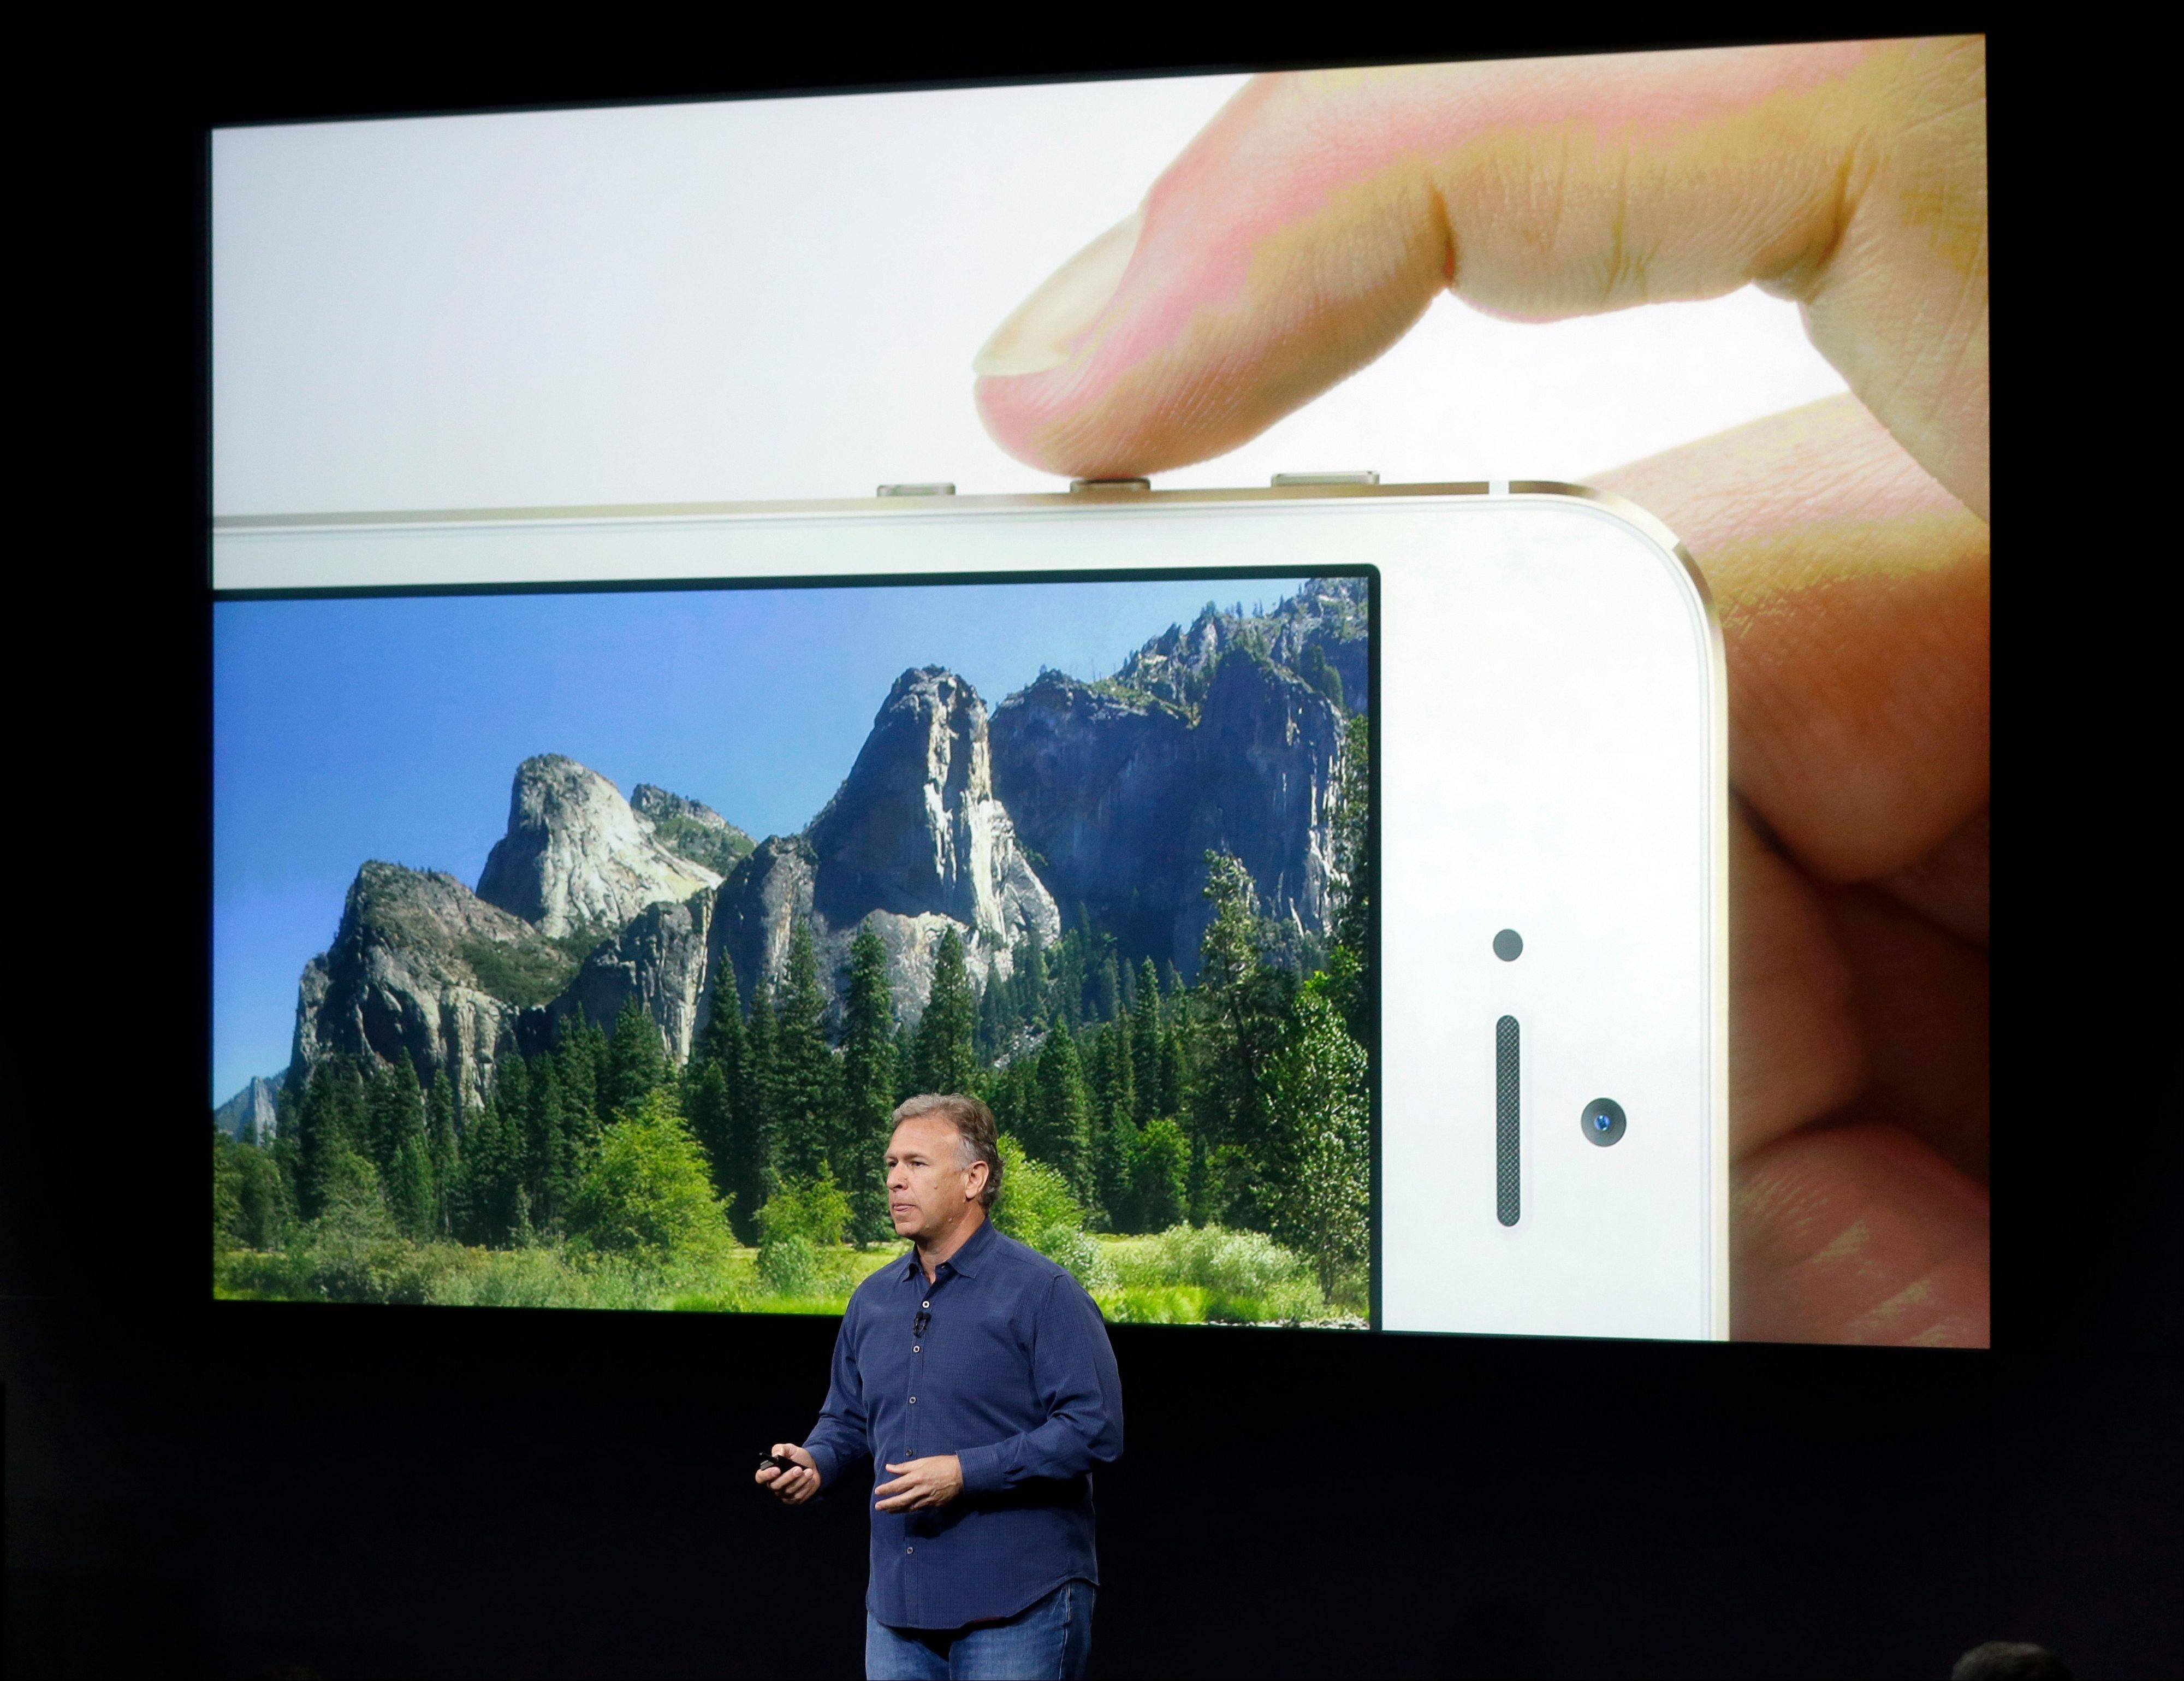 Phil Schiller, Apple's senior vice president of worldwide product marketing, speaks on stage about the camera quality during the introduction of the new iPhone 5s in Cupertino, Calif., Tuesday, Sept. 10, 2013. Apple�s latest iPhones will come in a bevy of colors and two distinct designs, one made of plastic and the other that aims to be �the gold standard of smartphones and reads your fingerprint.